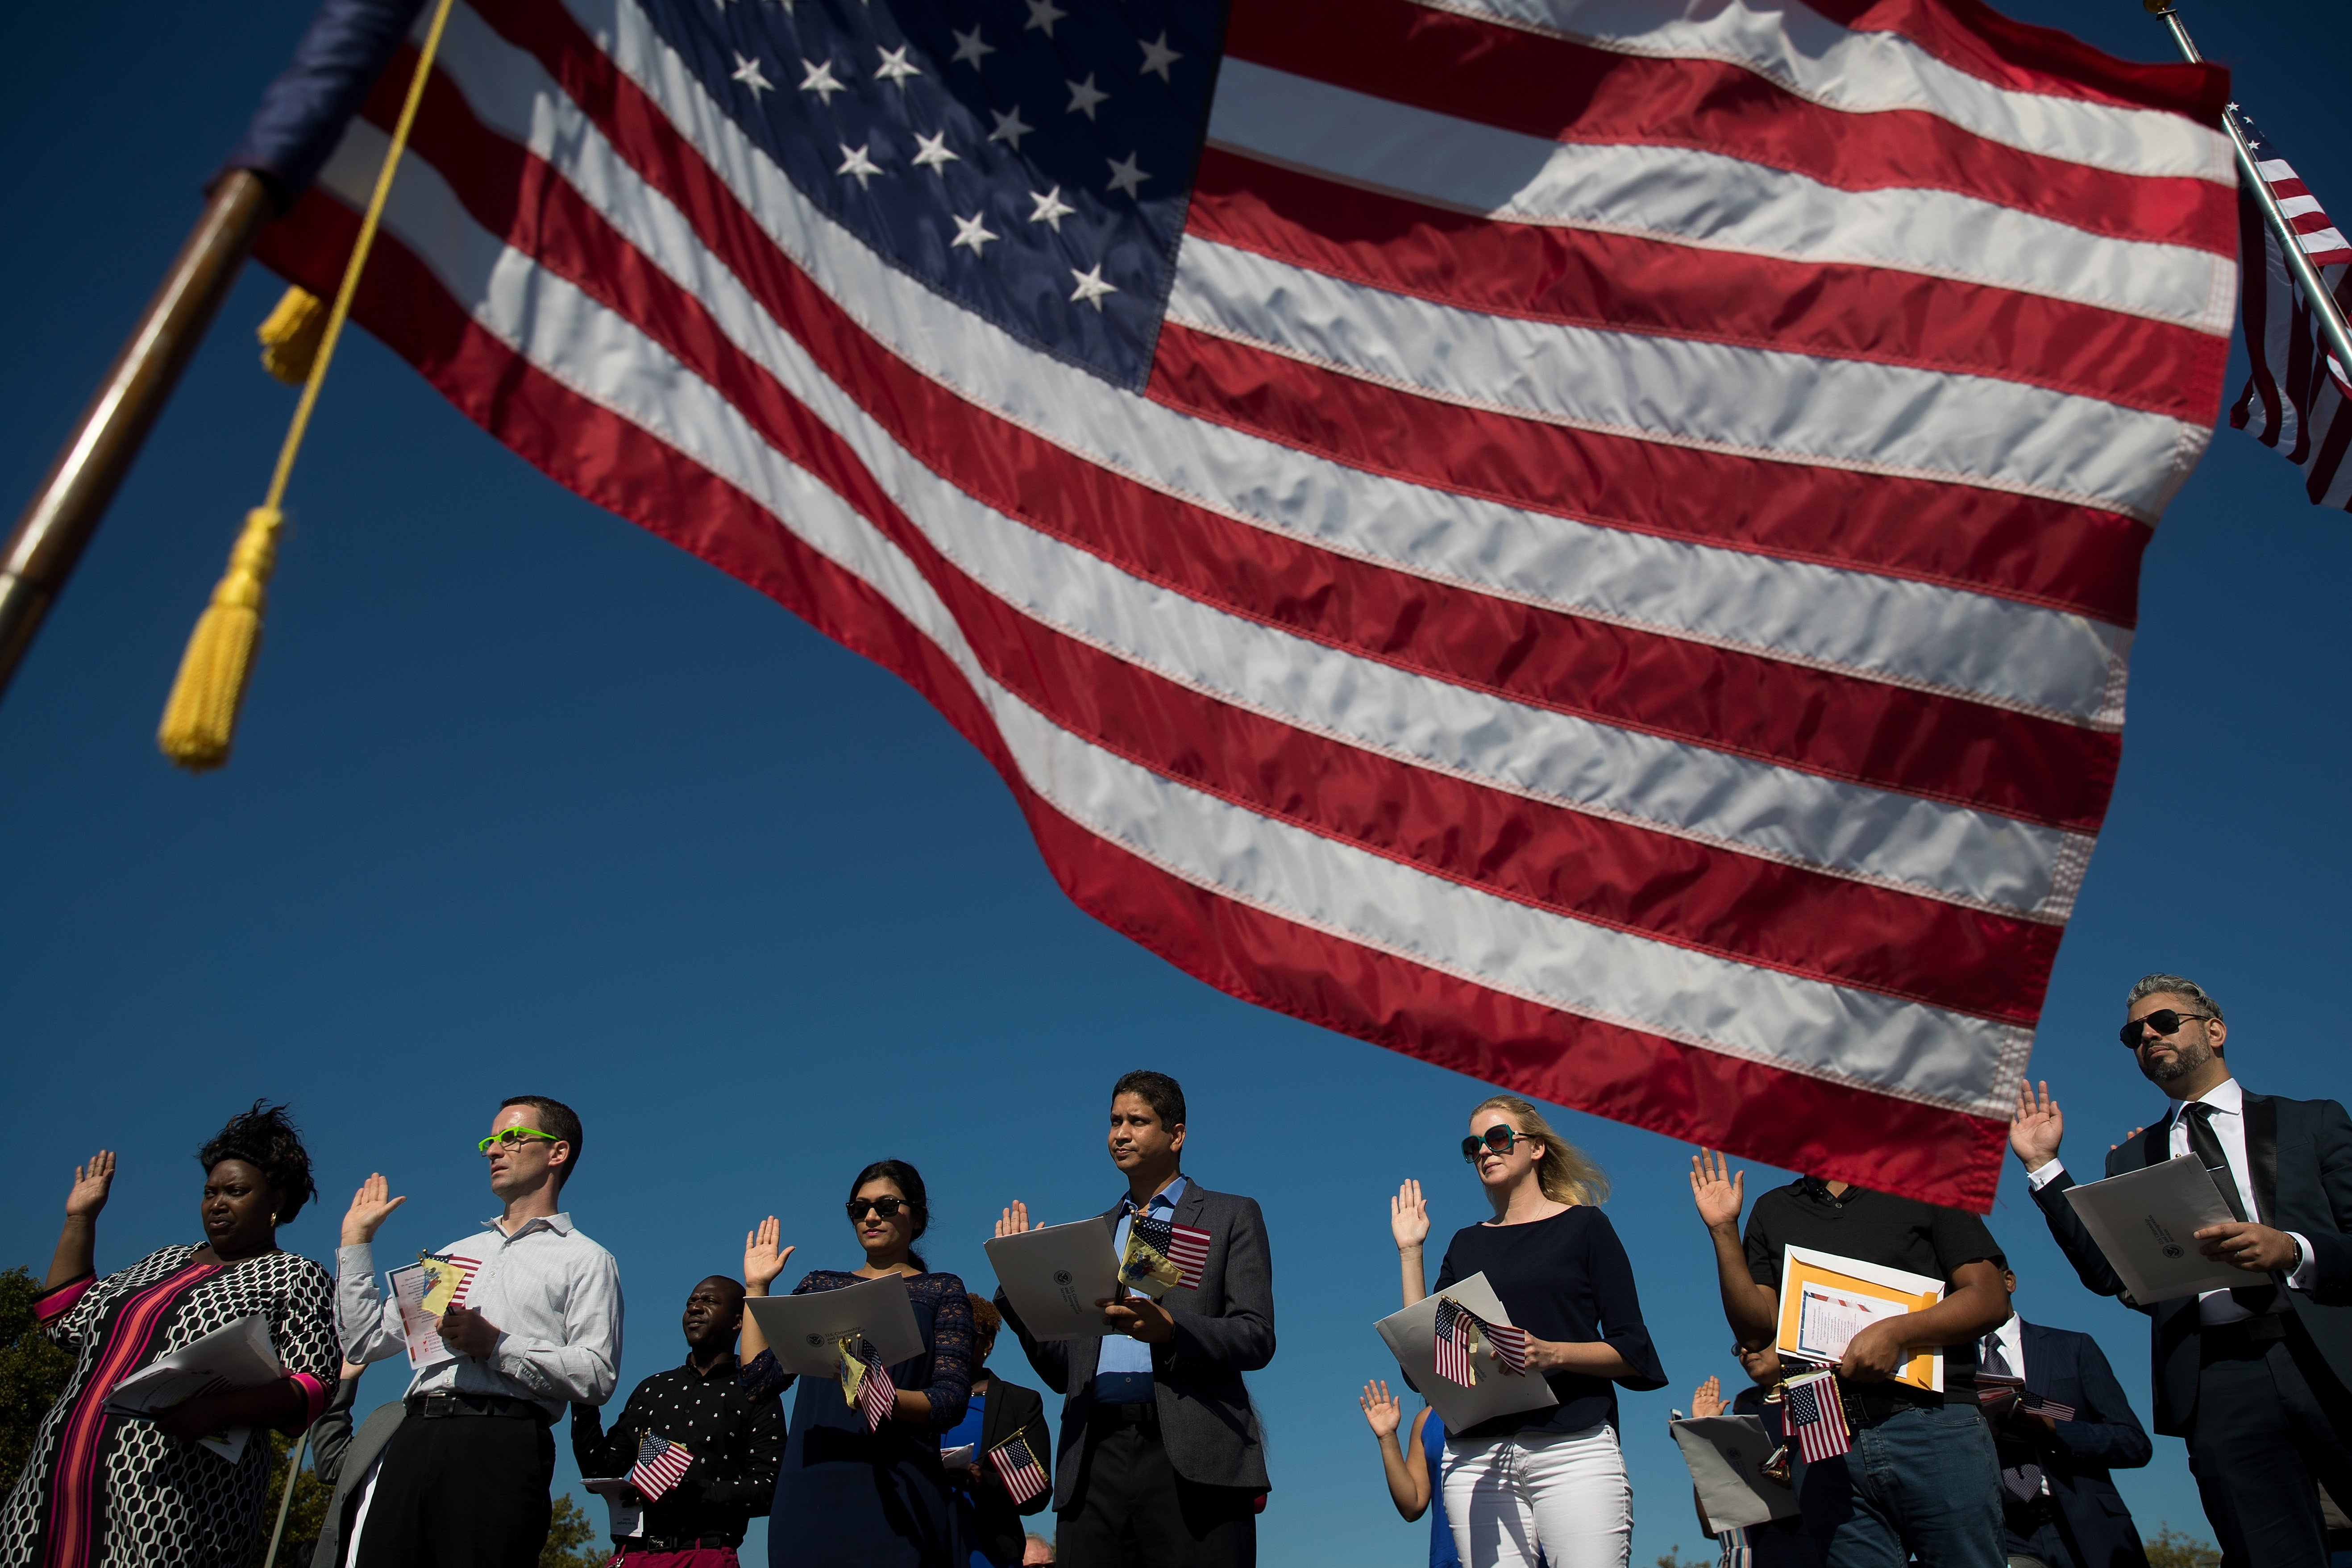 Image: BESTPIX On Citizenship Day, Naturalization Ceremony Held In New Jersey